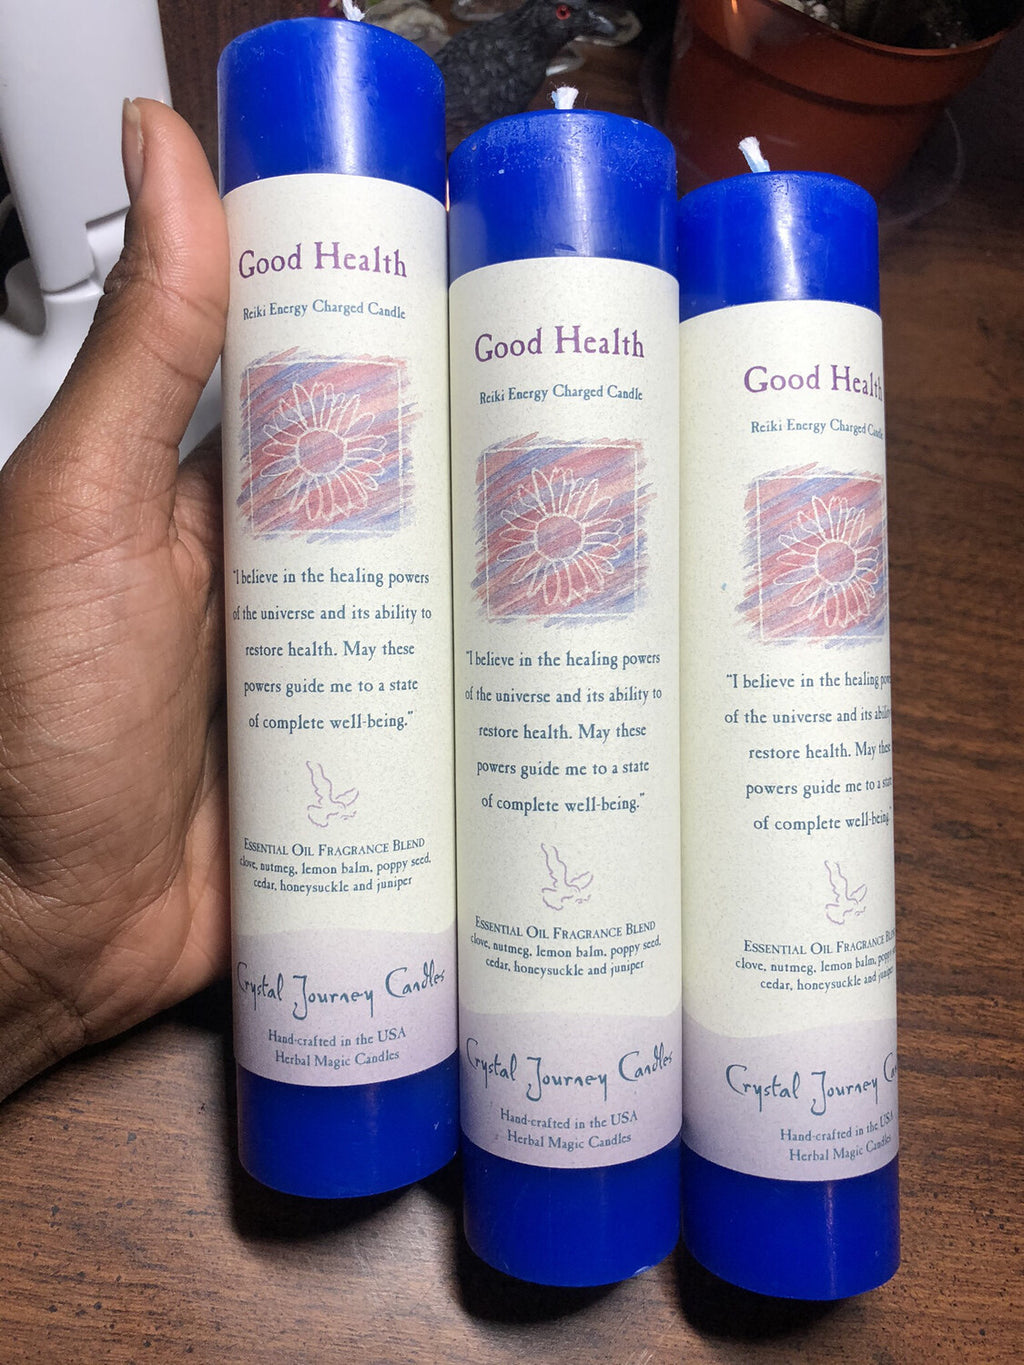 Good Health Crystal Journey Candle